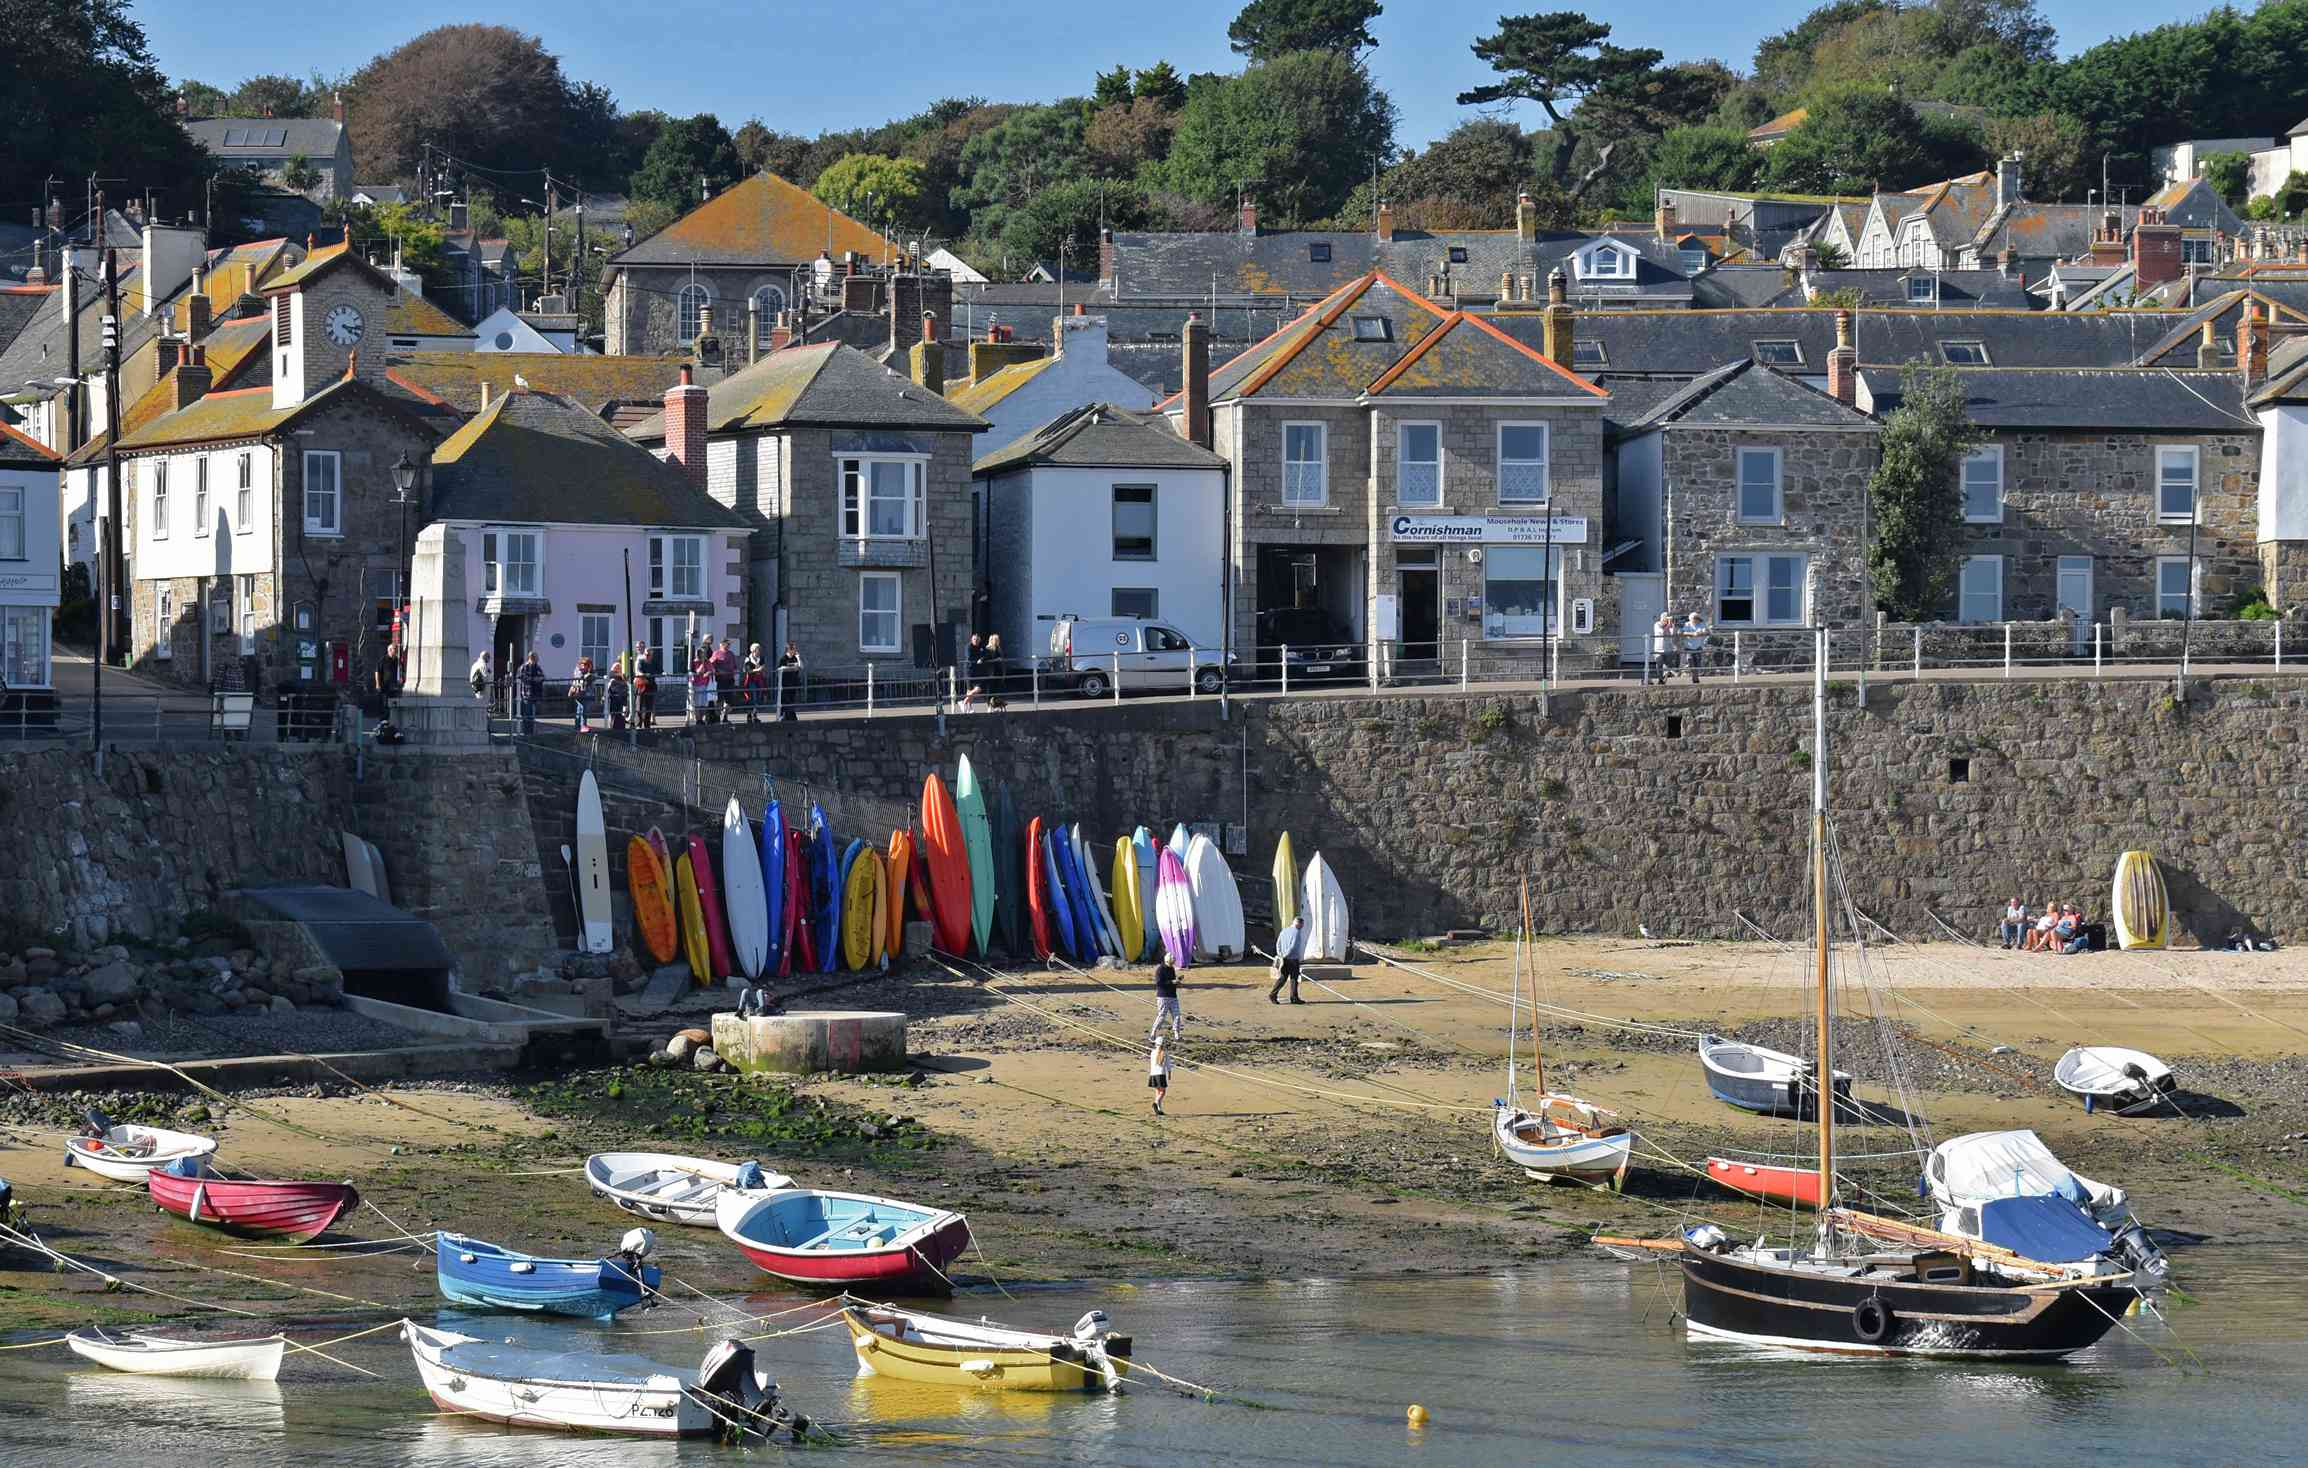 Mousehole Harbour with small boats and seawall backed by fishermen's cottages.